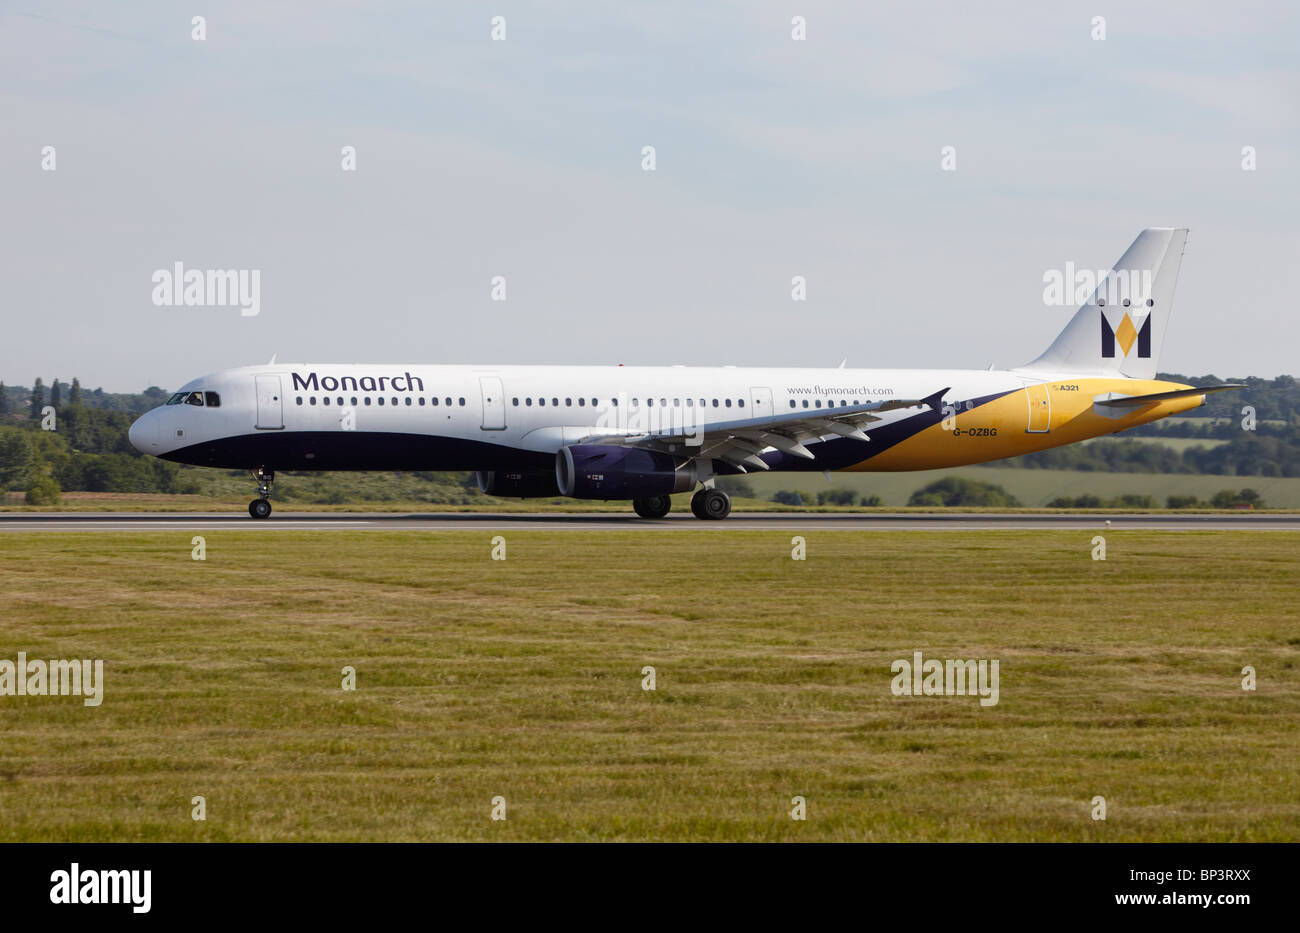 Monarch Airlines Airbus A321-231 taking off at Luton Airport, Bedfordshire, England, United Kingdom Stock Photo